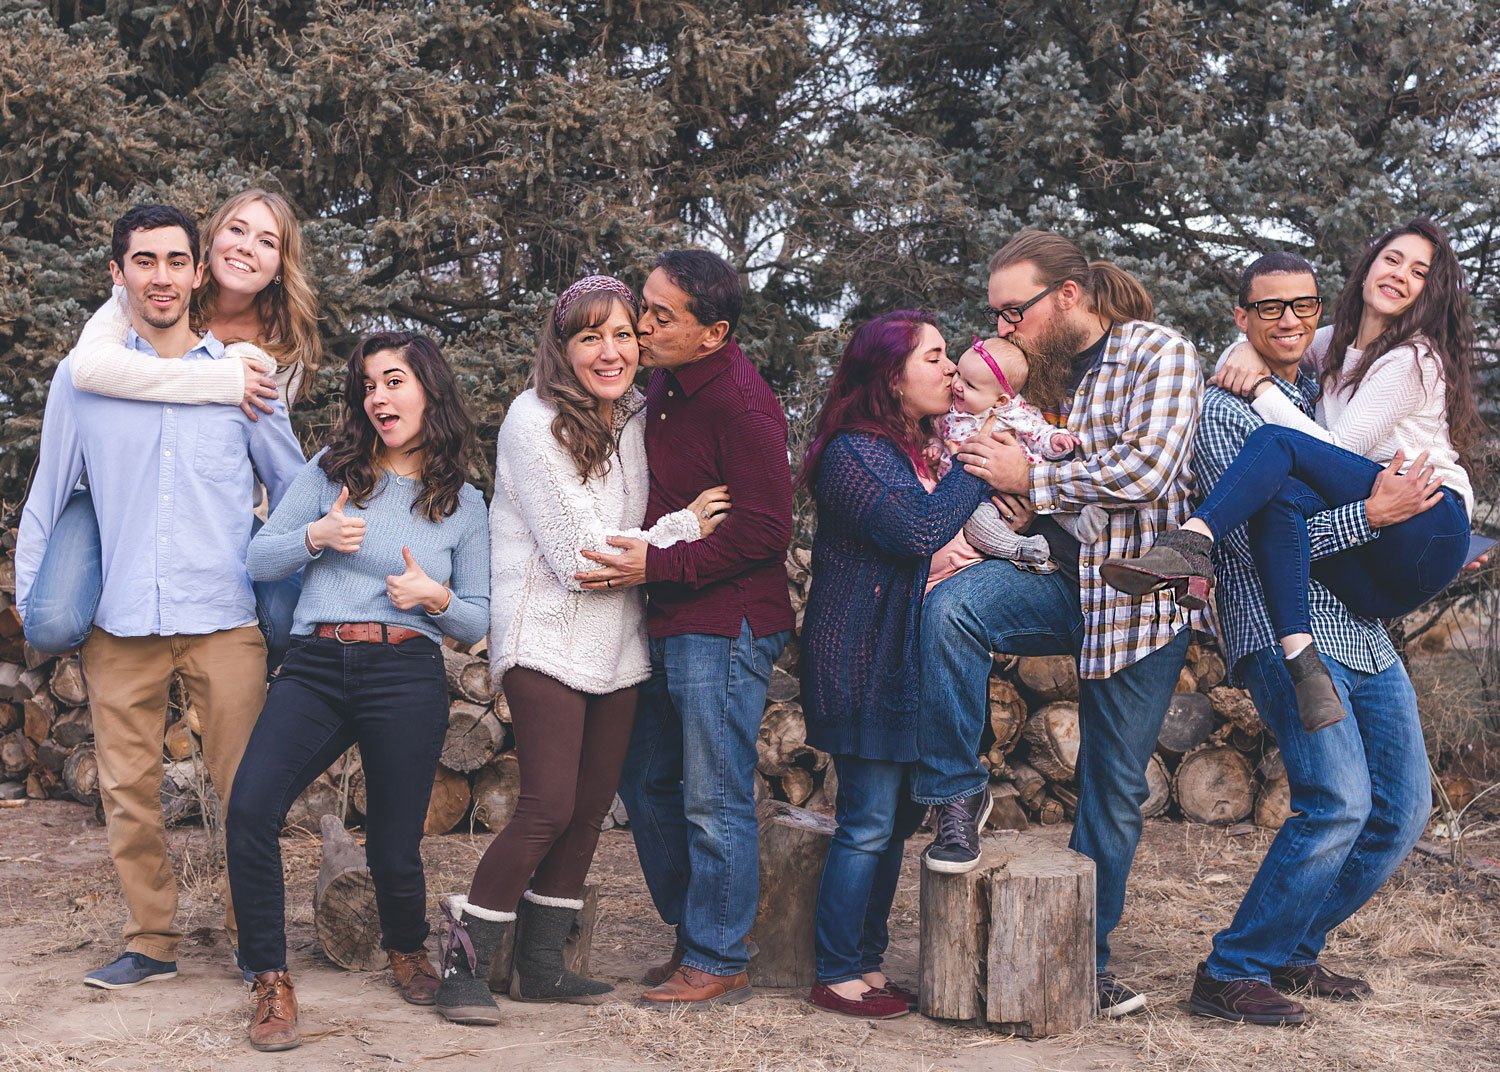 A multi-generational and extended family portrait, with grandparents, cousins and aunts and uncles!